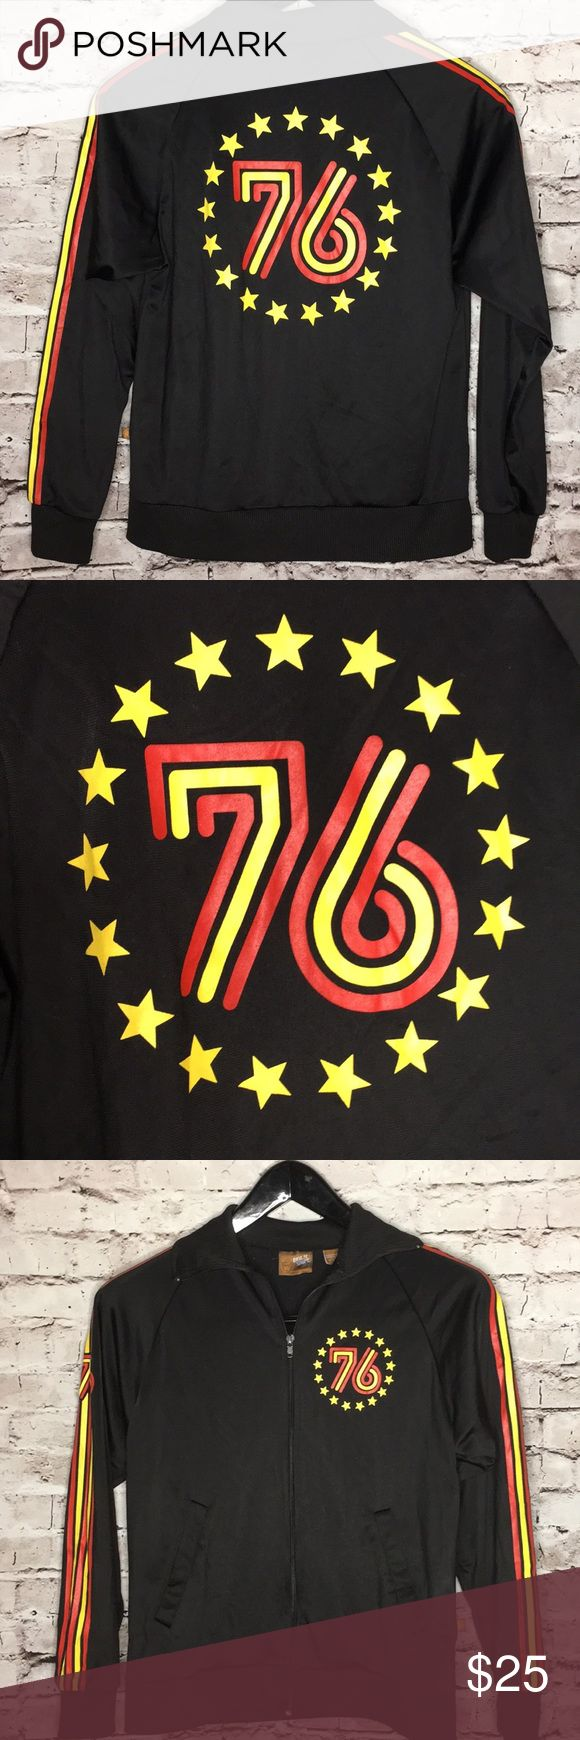 """Spirit of 76 striped zip up windbreaker XS super cool vintage inspired zip up - two pockets and rad vintage inspired stripes up both sleeves and 76 surrounded by stars in the back. same image on upper left part of chest in front. size xs   underarm to underarm: 18: shoulder to hem: 22.5""""  very good used condition ugly shirt Jackets & Coats"""